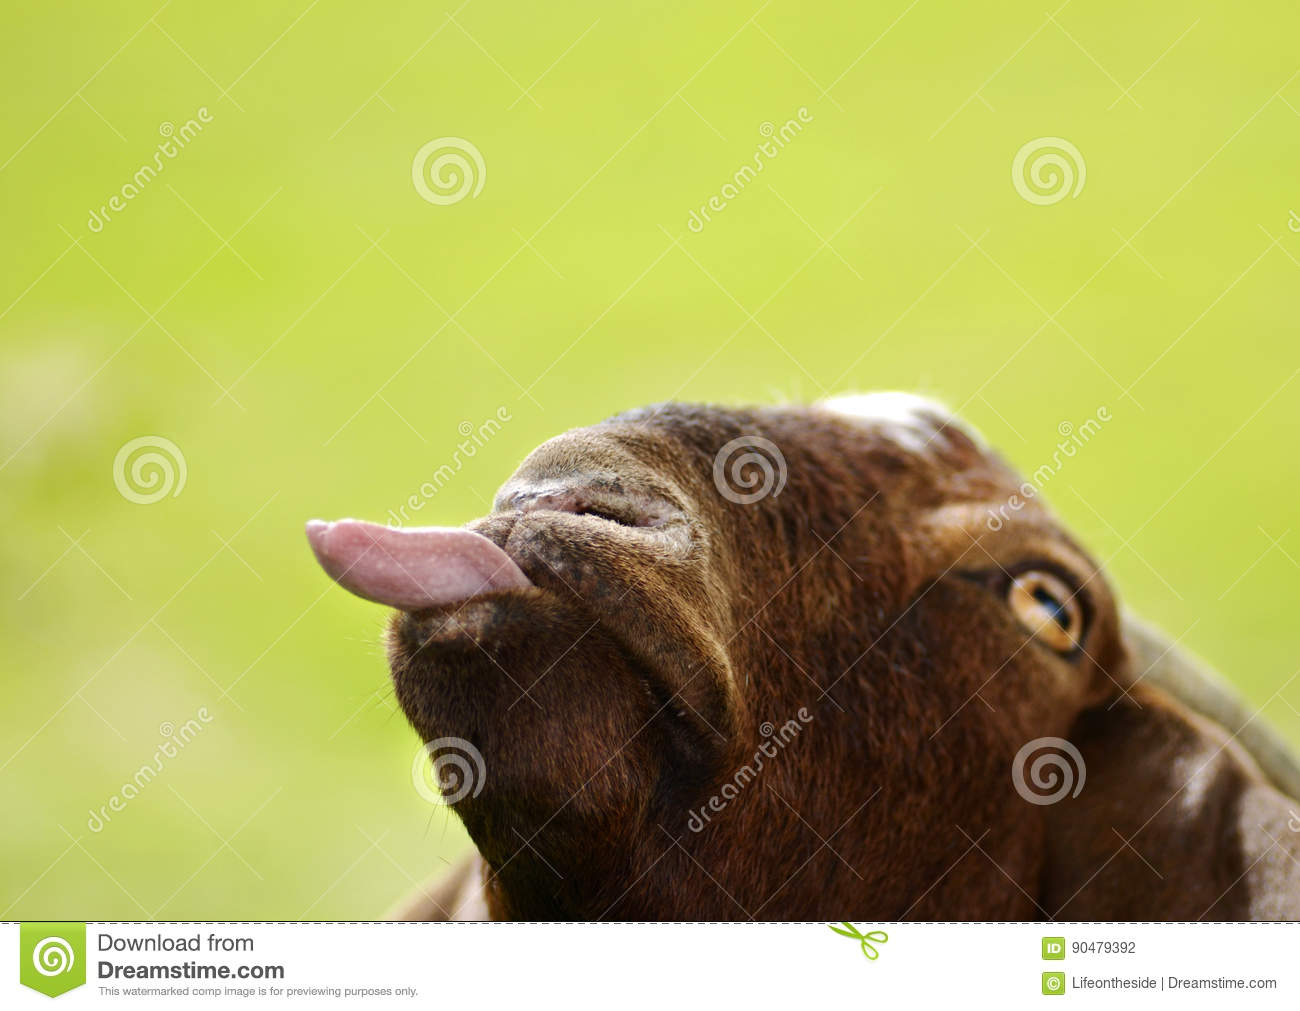 Funny goat poking tongue out isolated on green background